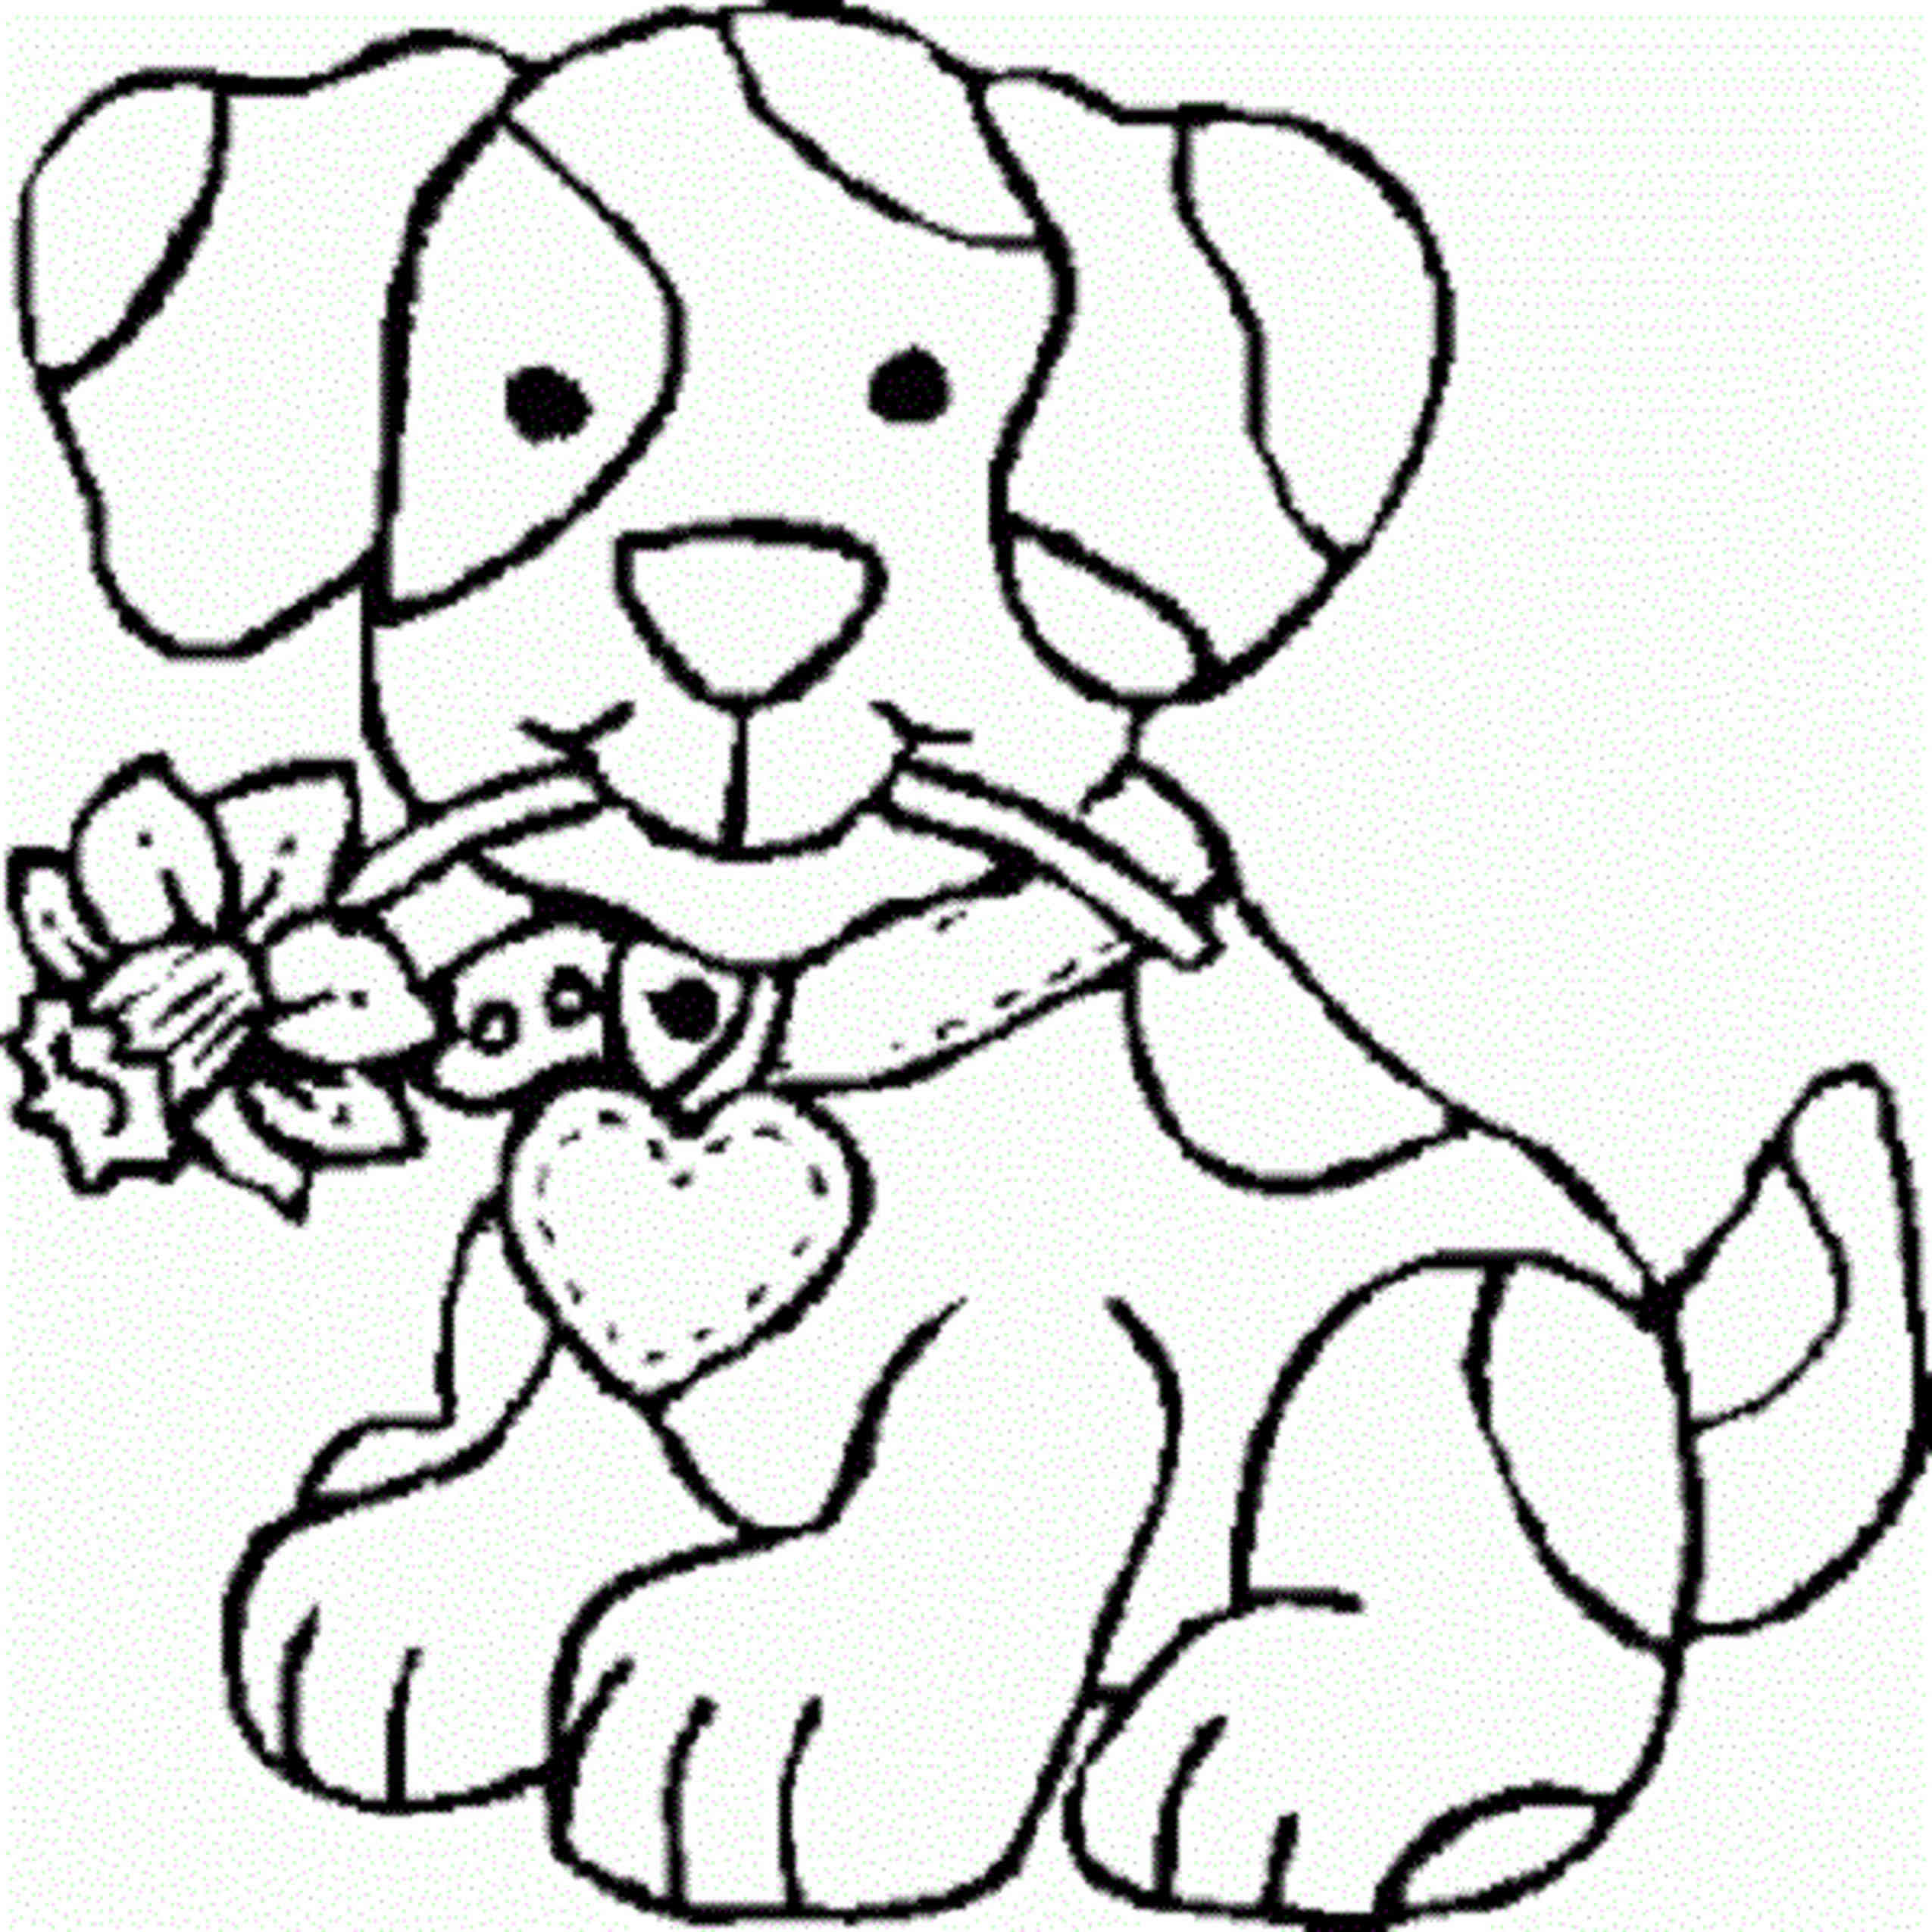 coloring pages for teenage girls coloring home Coloring Pages for Teenage Girls  Coloring Pages For Girls Kids